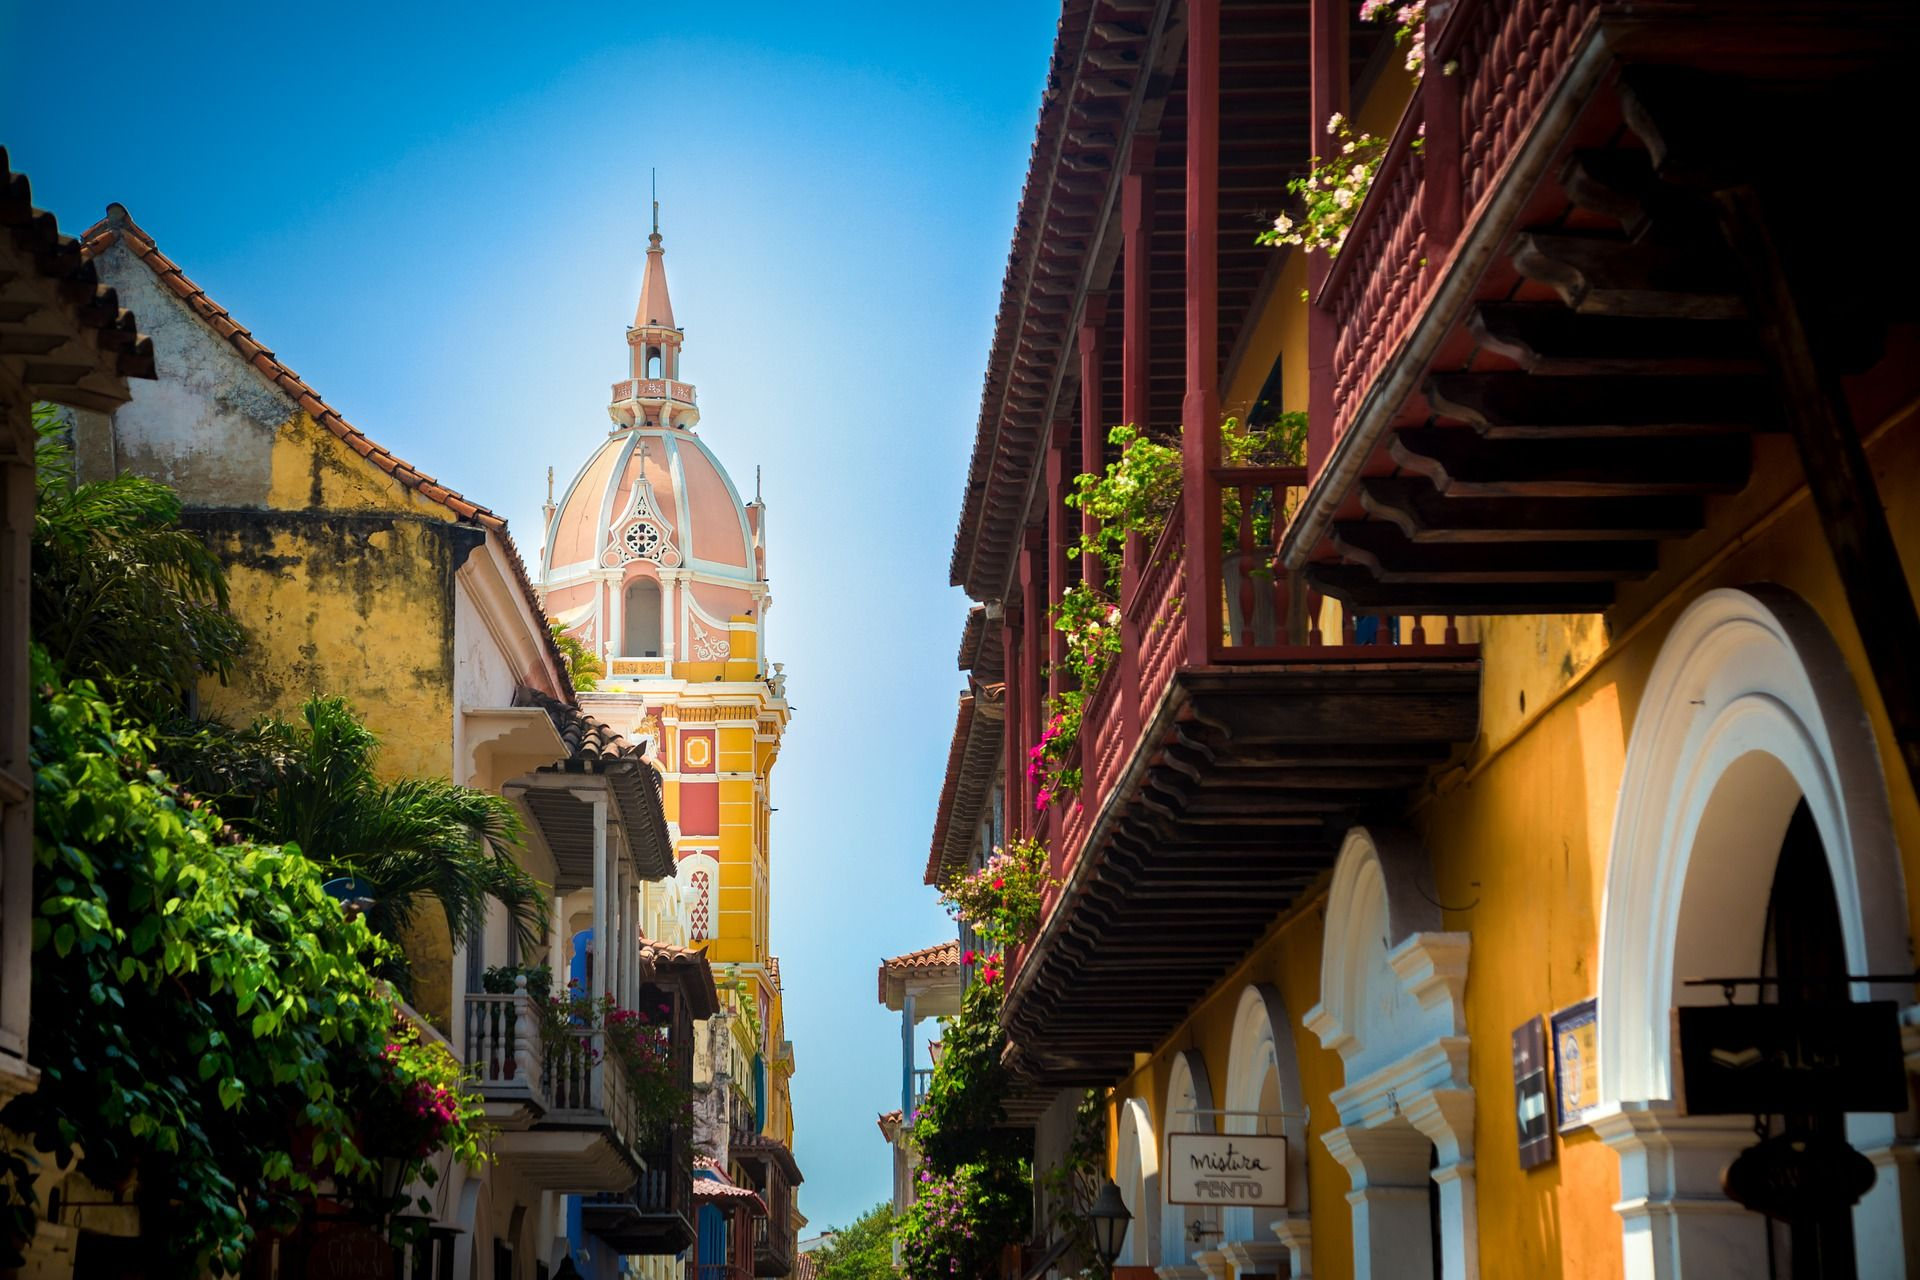 Colorful buildings in Cartagena, Colombia